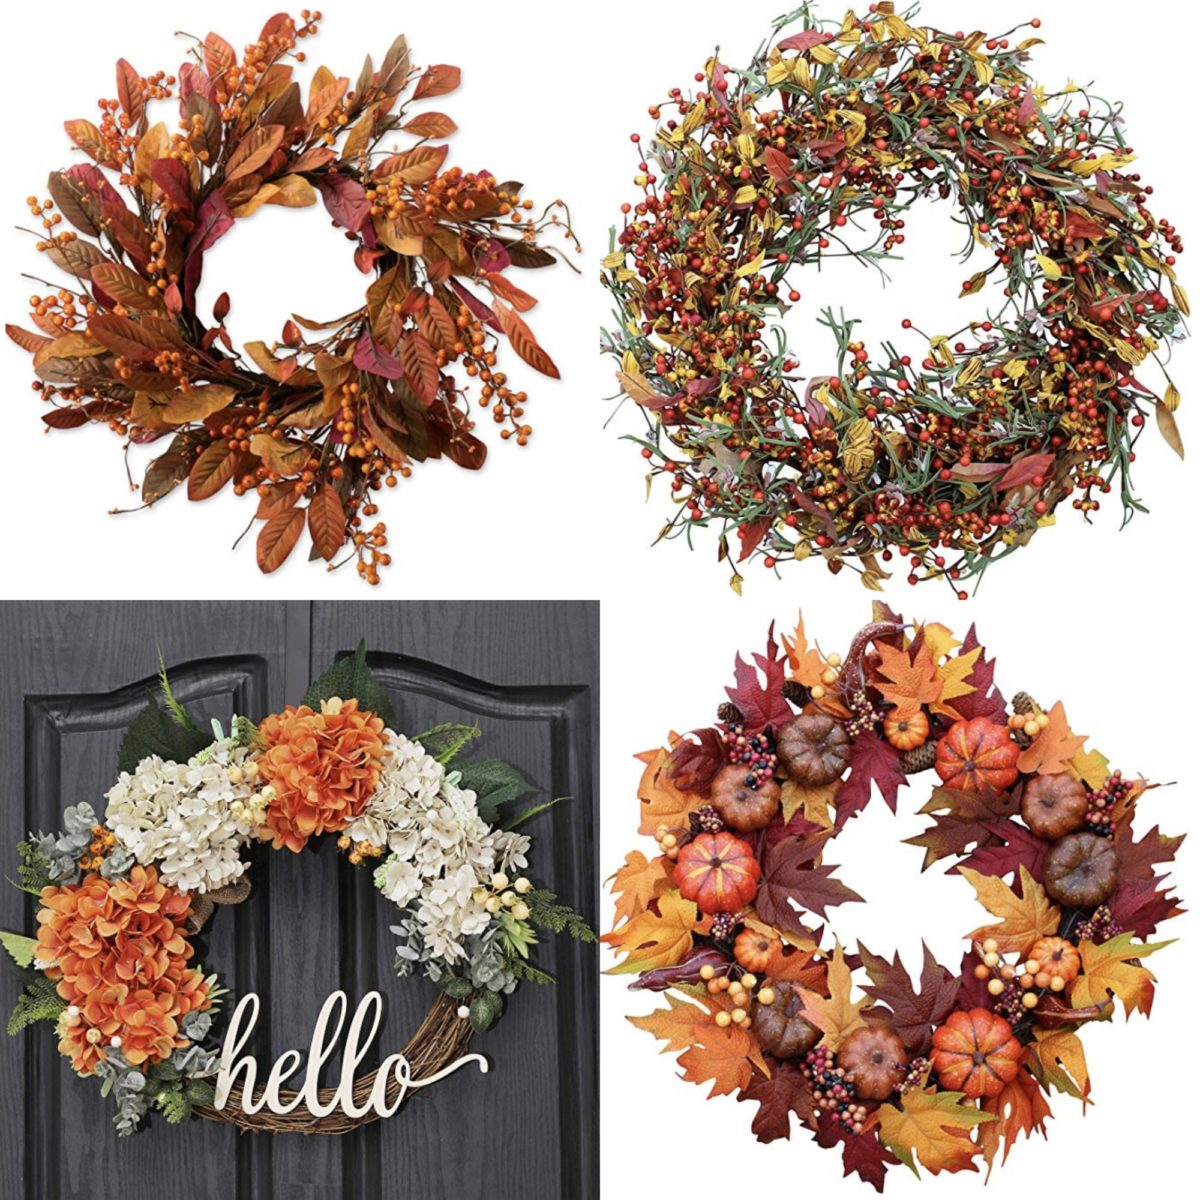 Fall Wreaths on Amazon PRIME